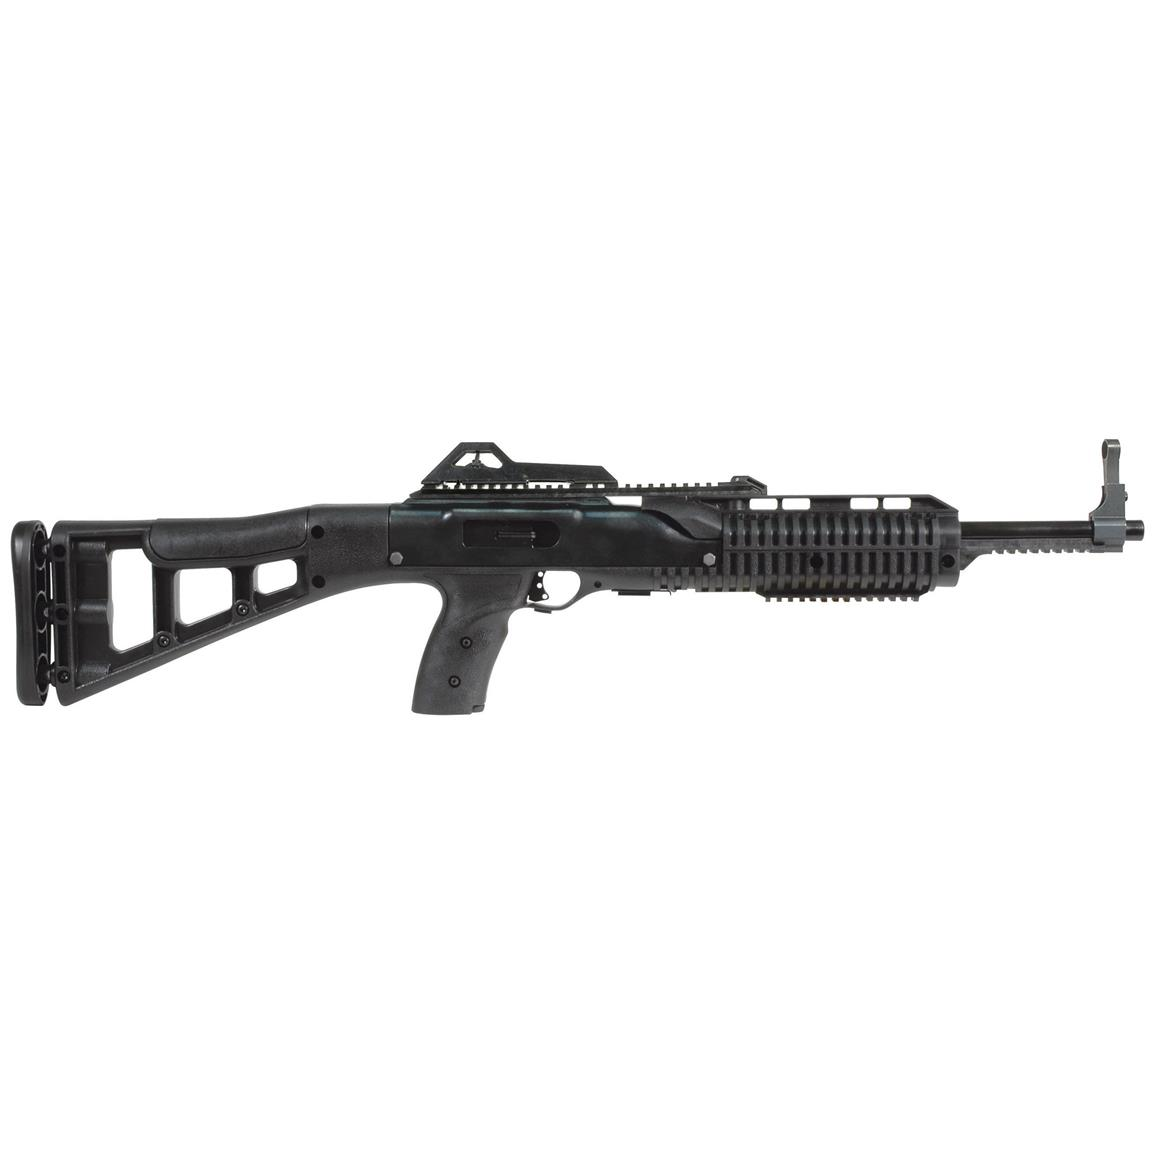 "Hi Point 4095 Carbine, Semi-Automatic, .40 Smith & Wesson, 17.5"" Barrel with Fore Grip, 10+1 Rounds"